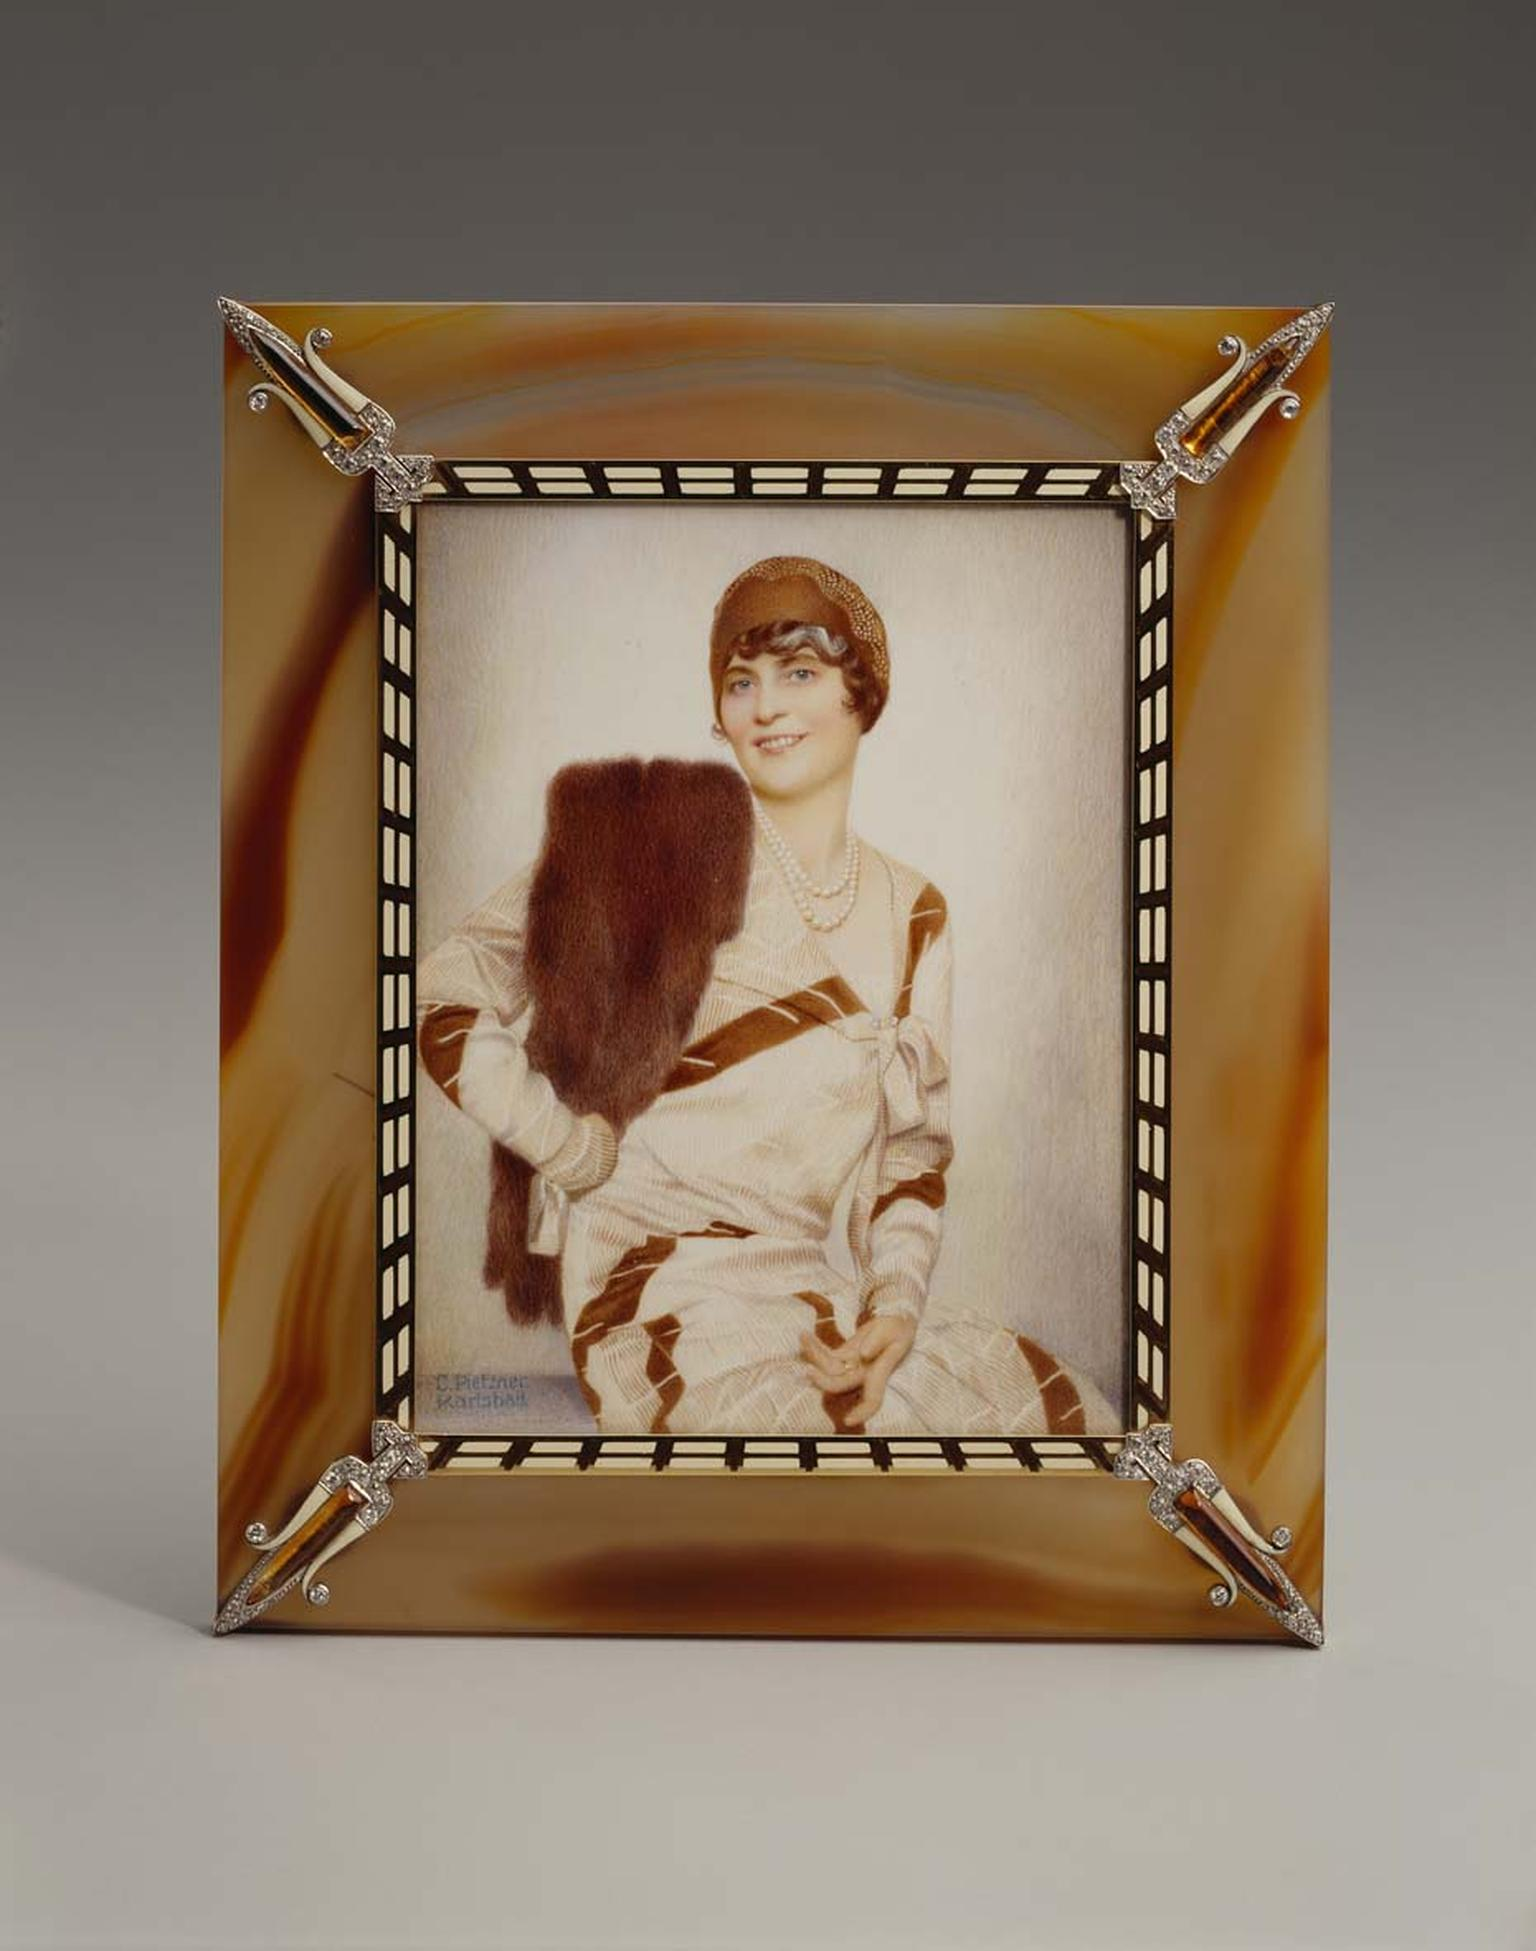 Cartier gold frame with agate, enamel, citrine quartz and diamonds displaying a photo of Marjorie Merriweather Post by C. Peitzner in watercolor on ivory. Image: Courtesy Hillwood Estate, Museum and Gardens